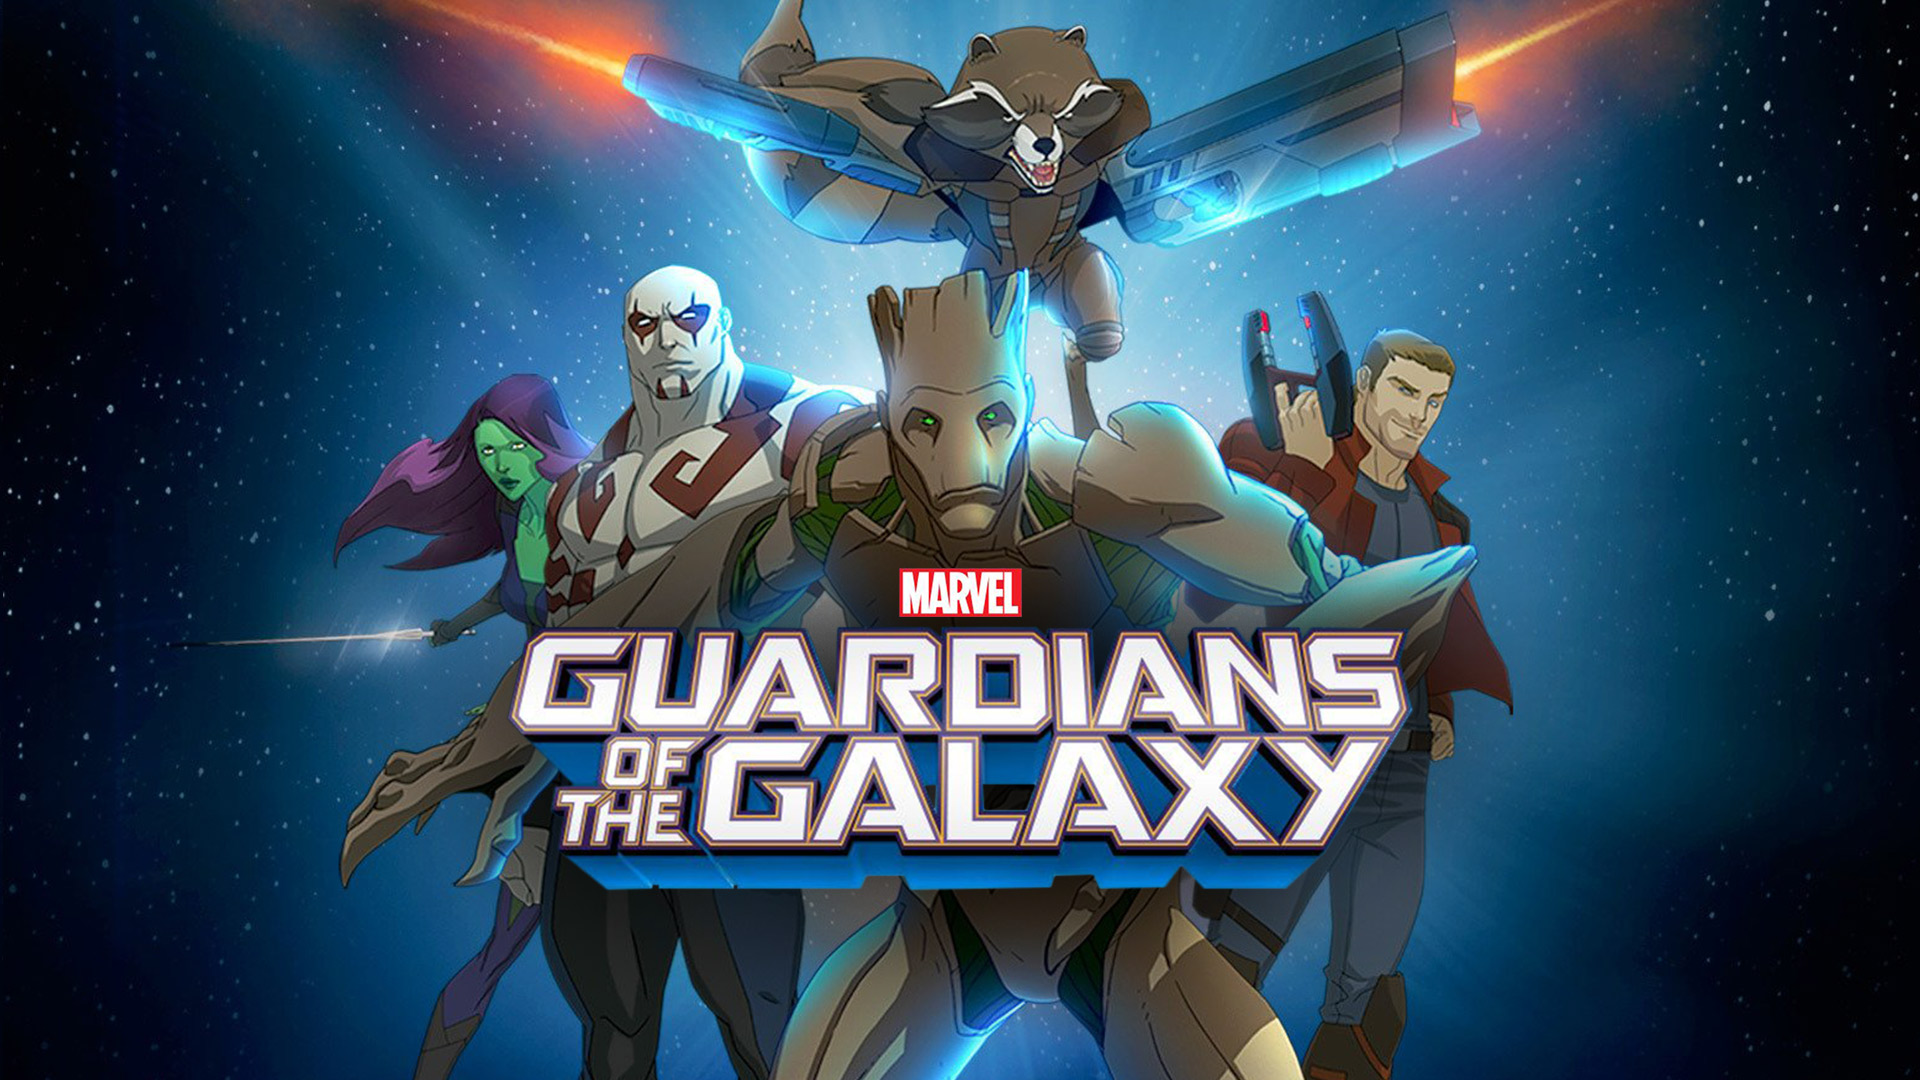 Marvel's Guardians of the Galaxy Volume 1